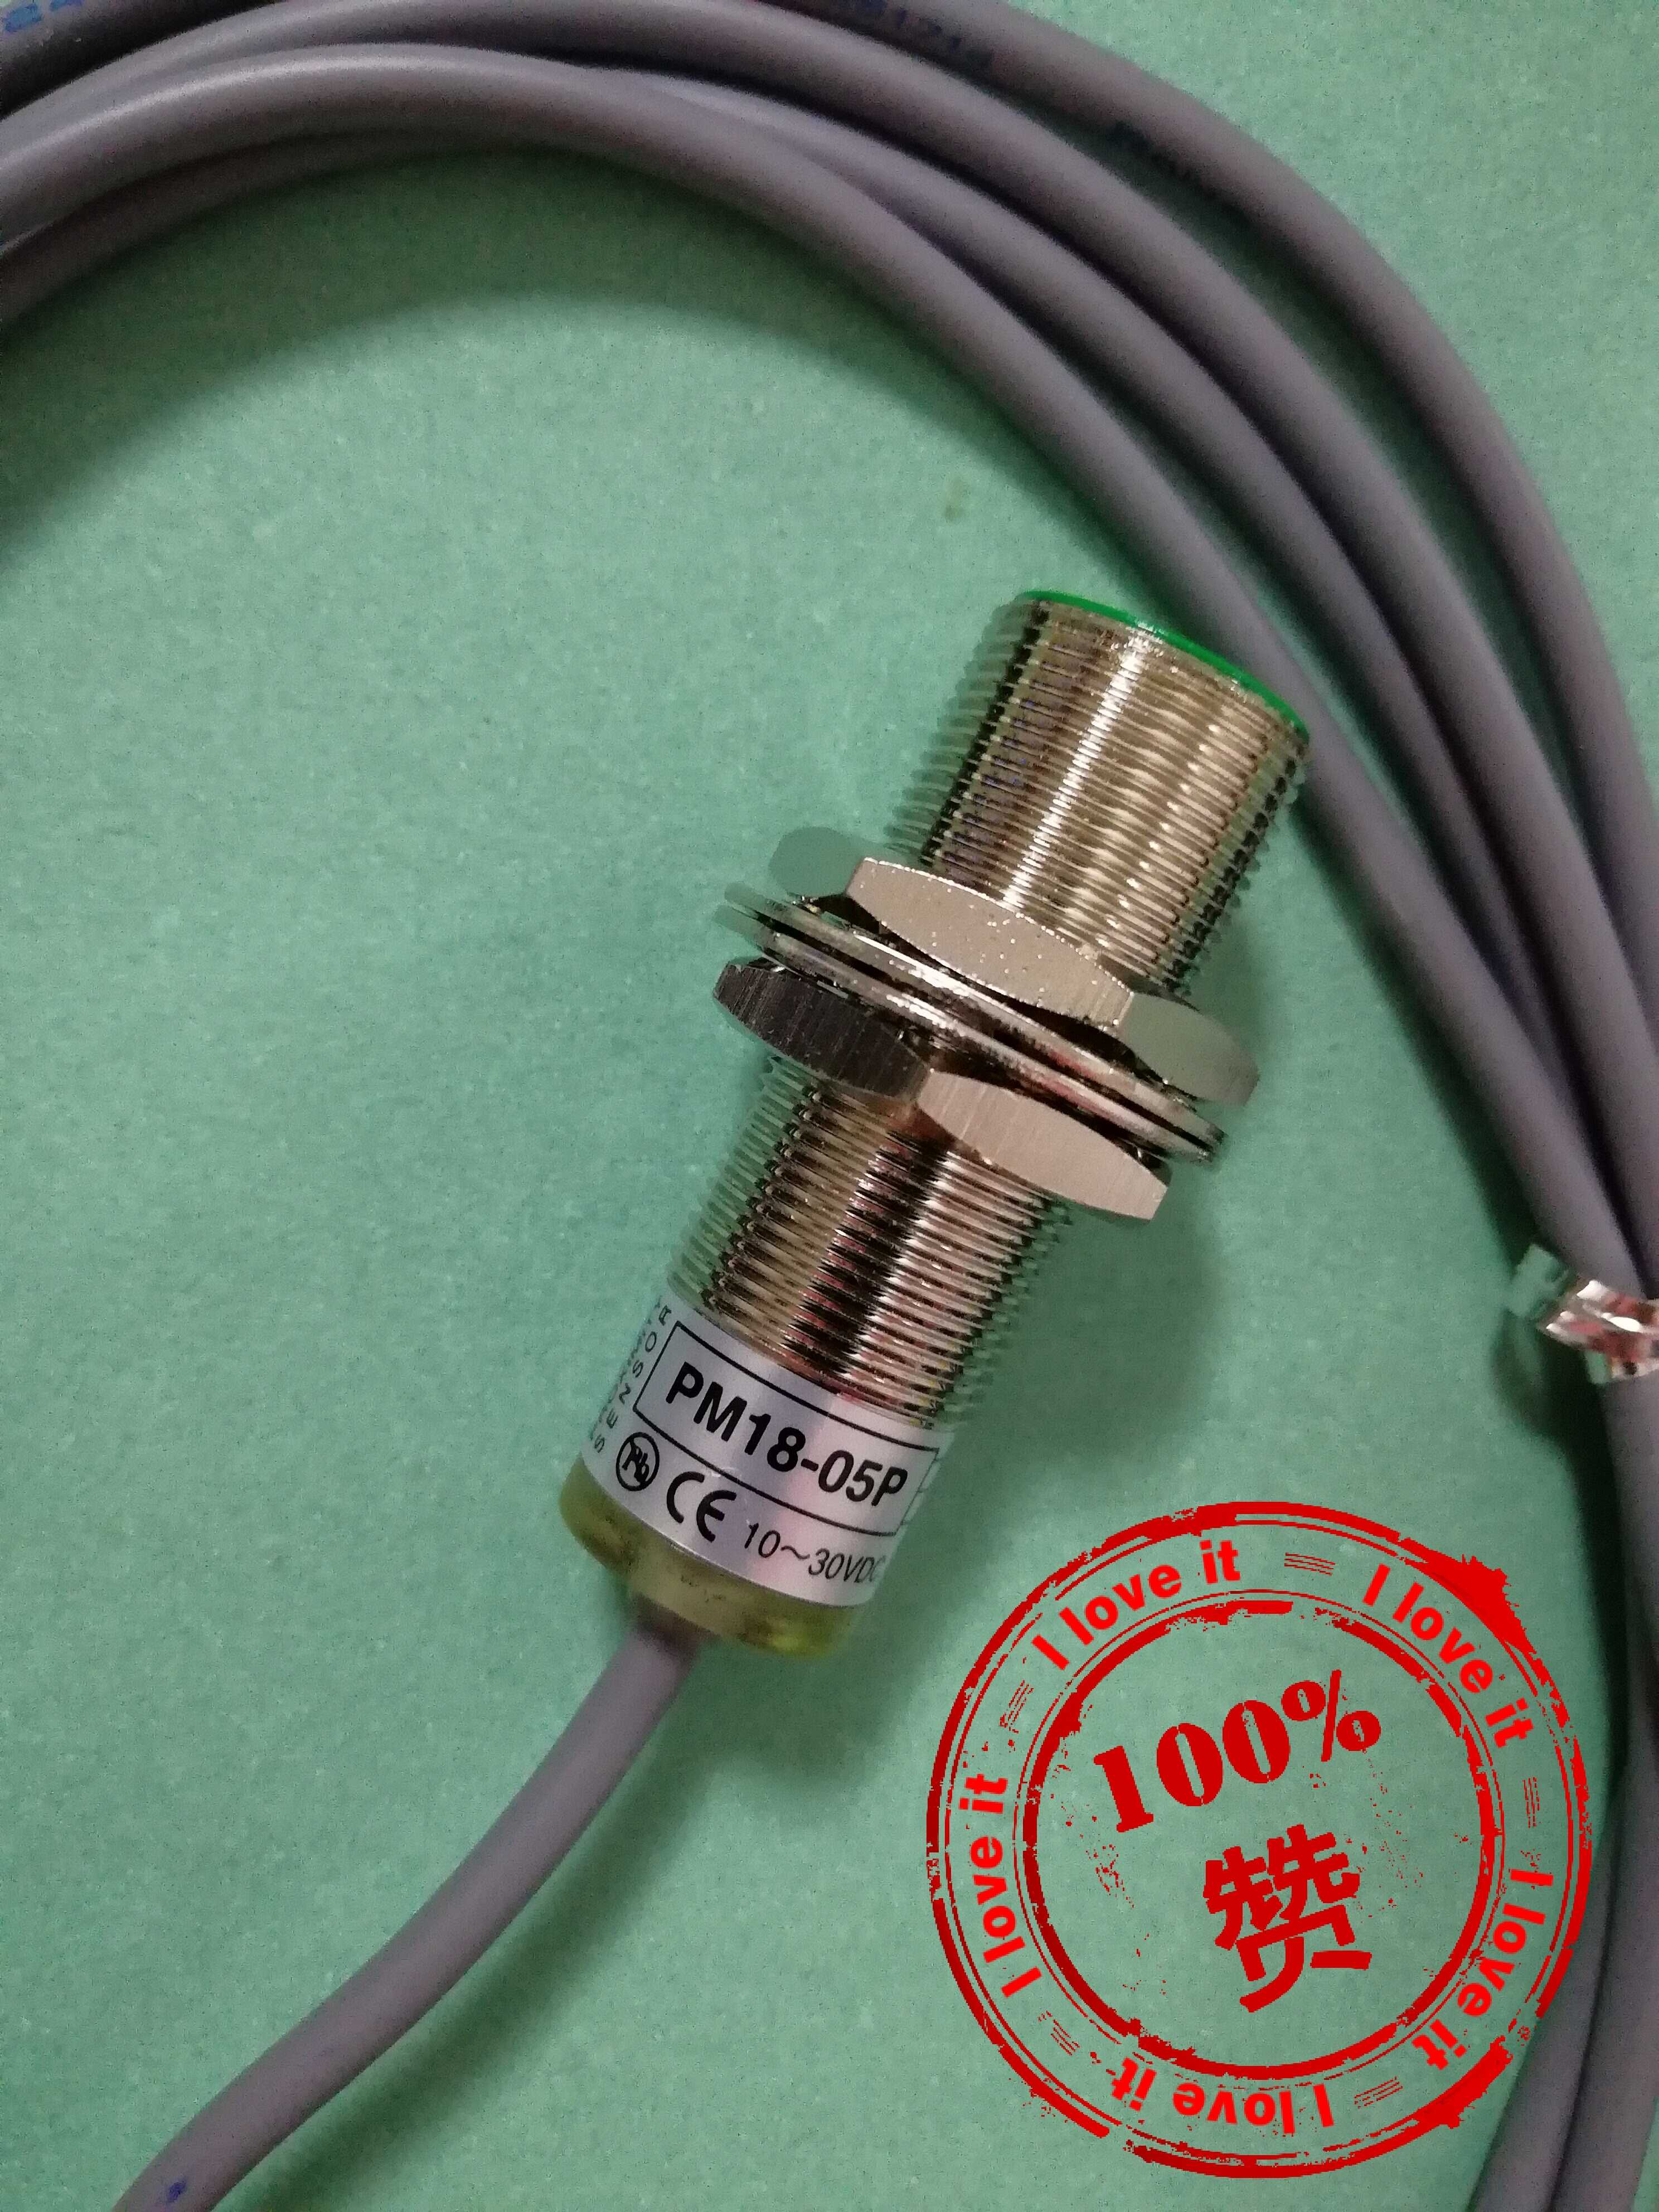 New Imported PM18-05PPNP Taiwanese Yangming Proximity Switch Sensor Embedded PM